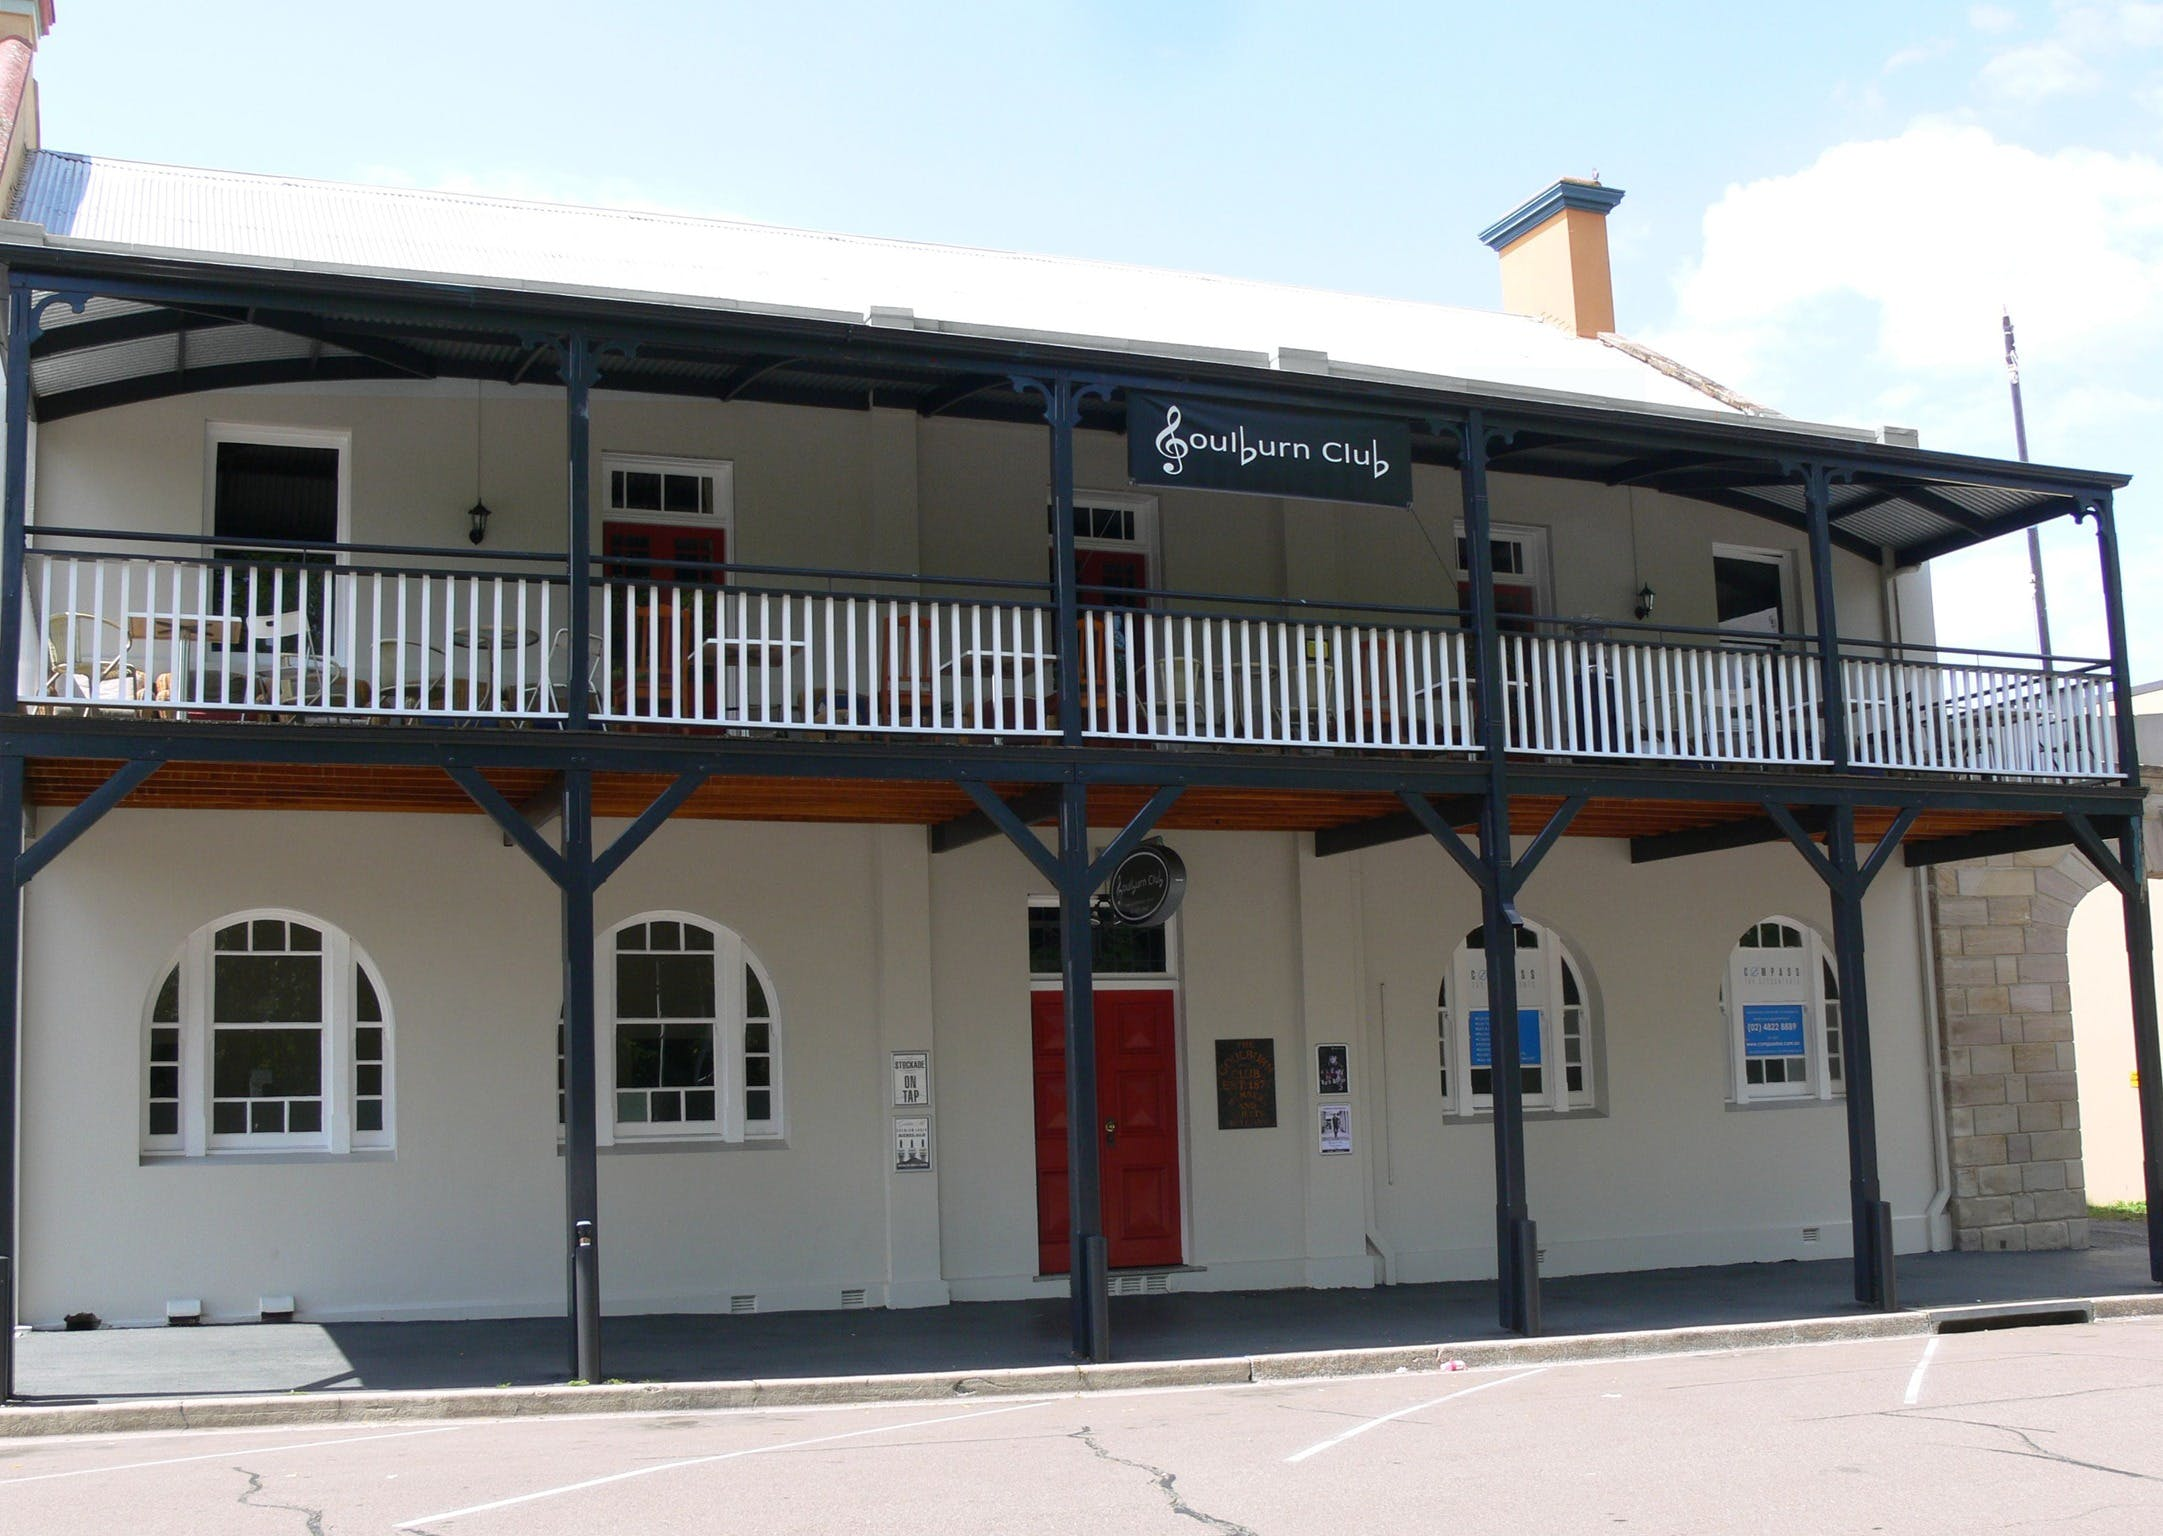 Open Mic Night at the Goulburn Club - WA Accommodation